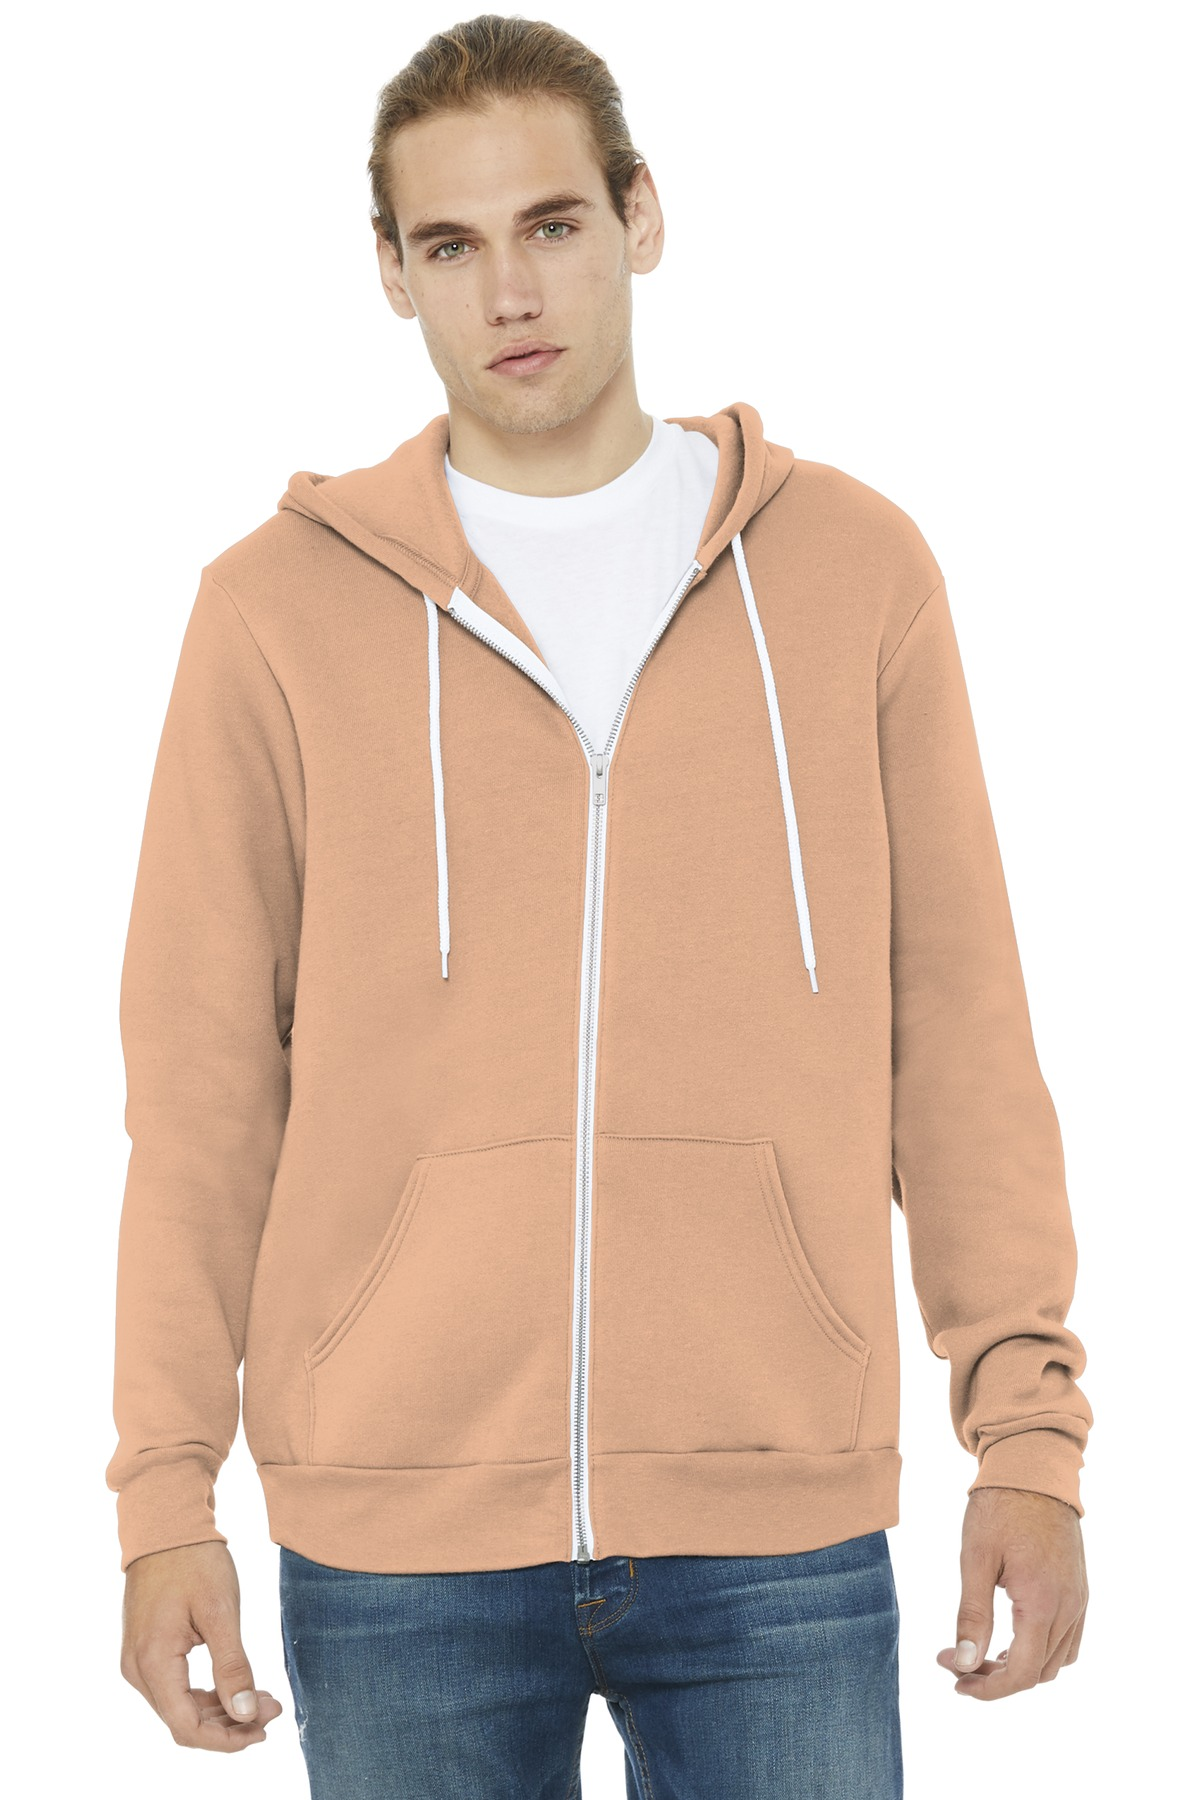 BELLA+CANVAS  ®  Unisex Sponge Fleece Full-Zip Hoodie. BC3739 - Peach